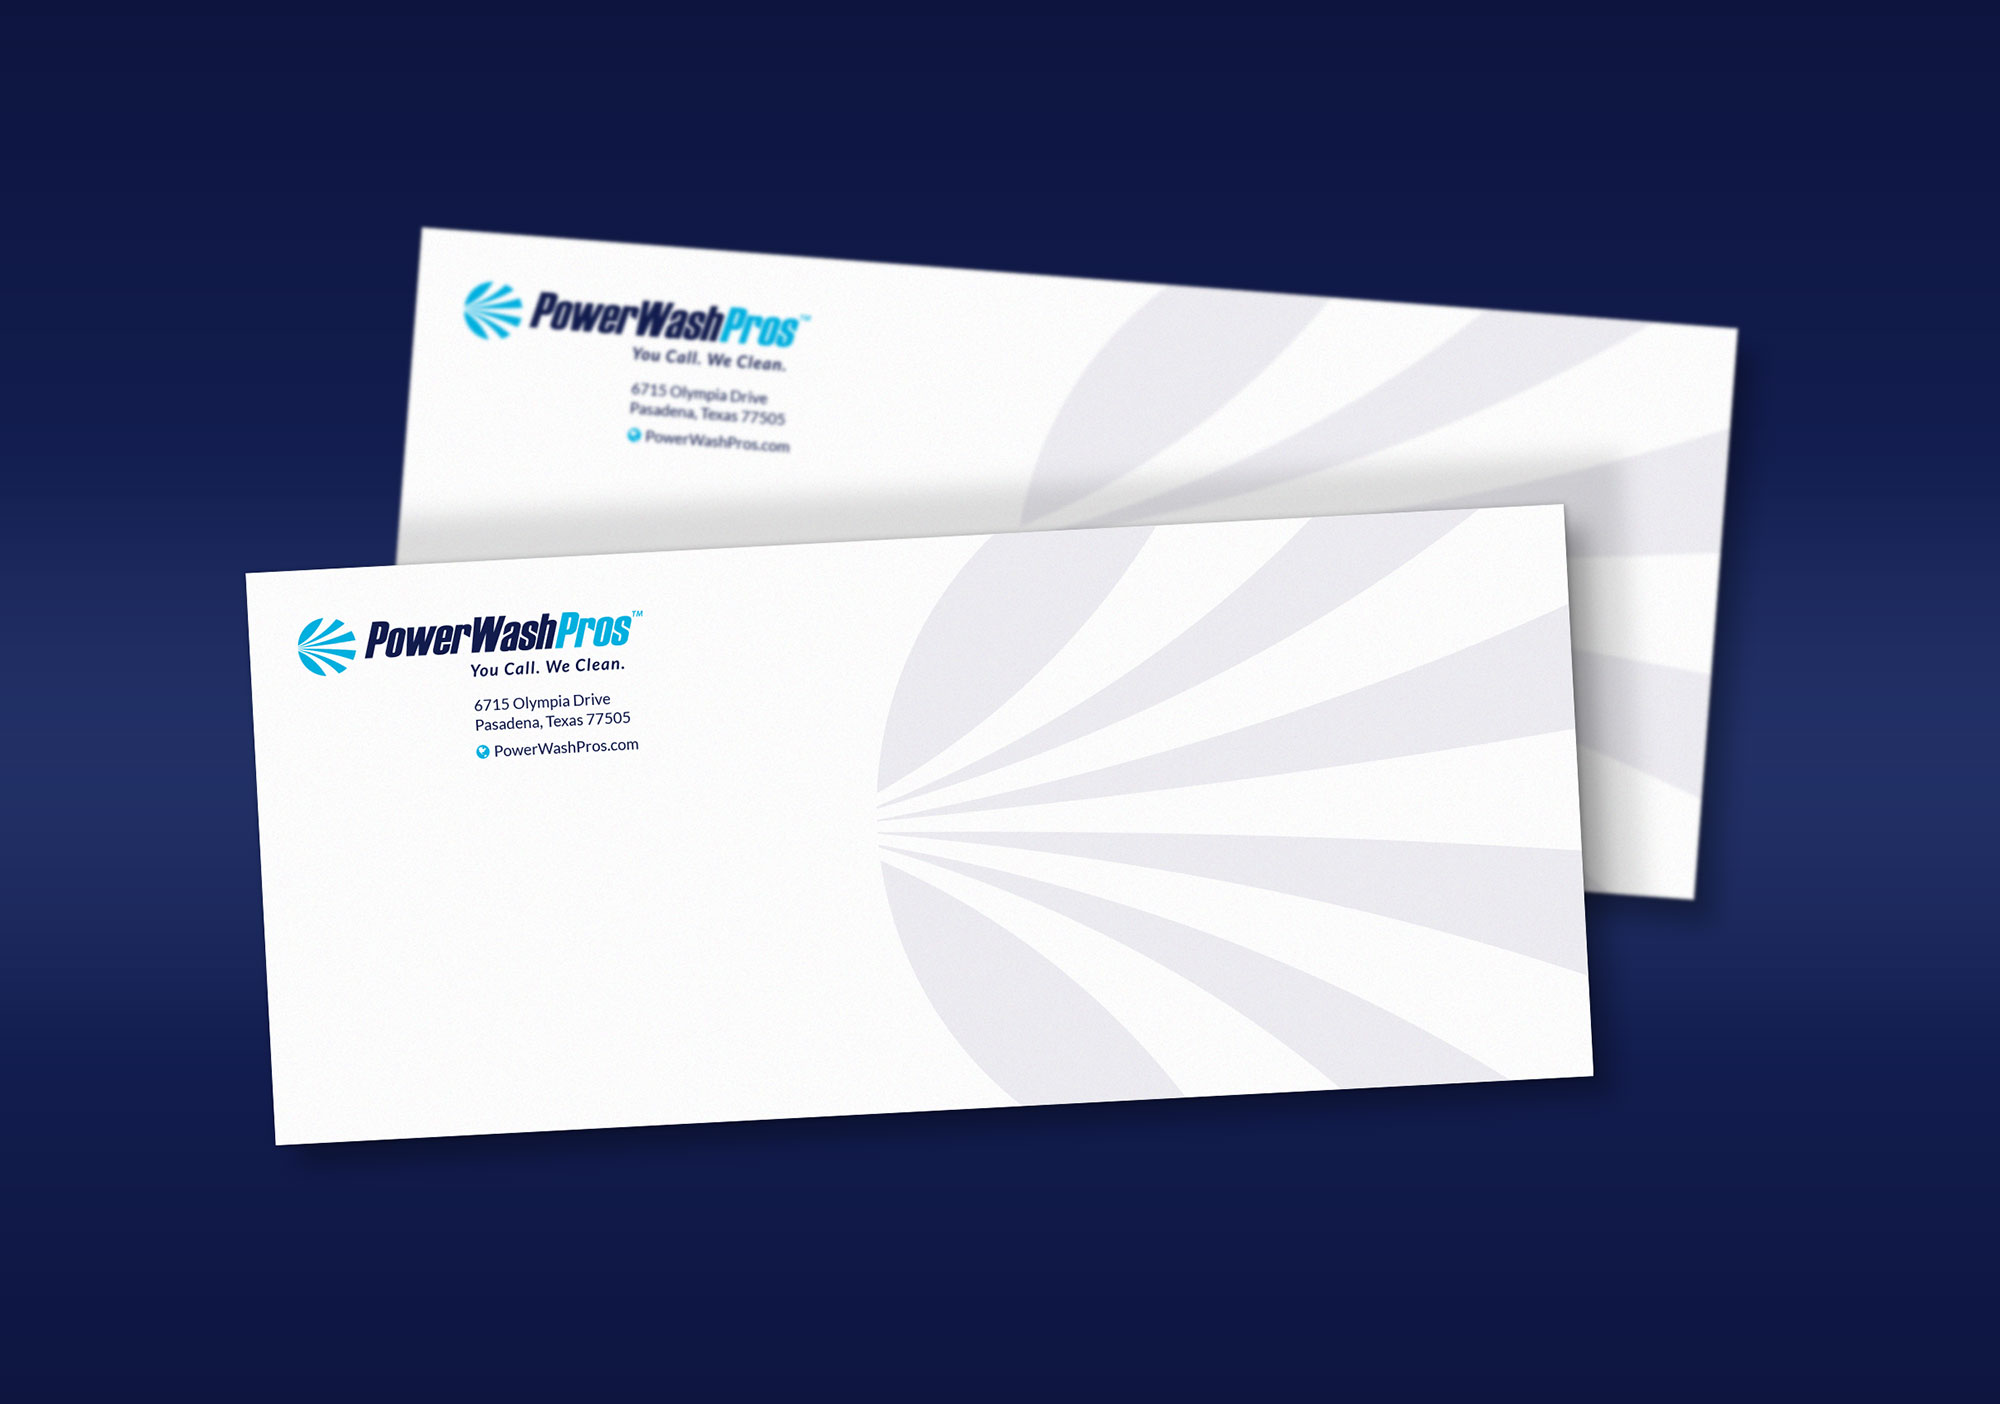 PWP envelope design